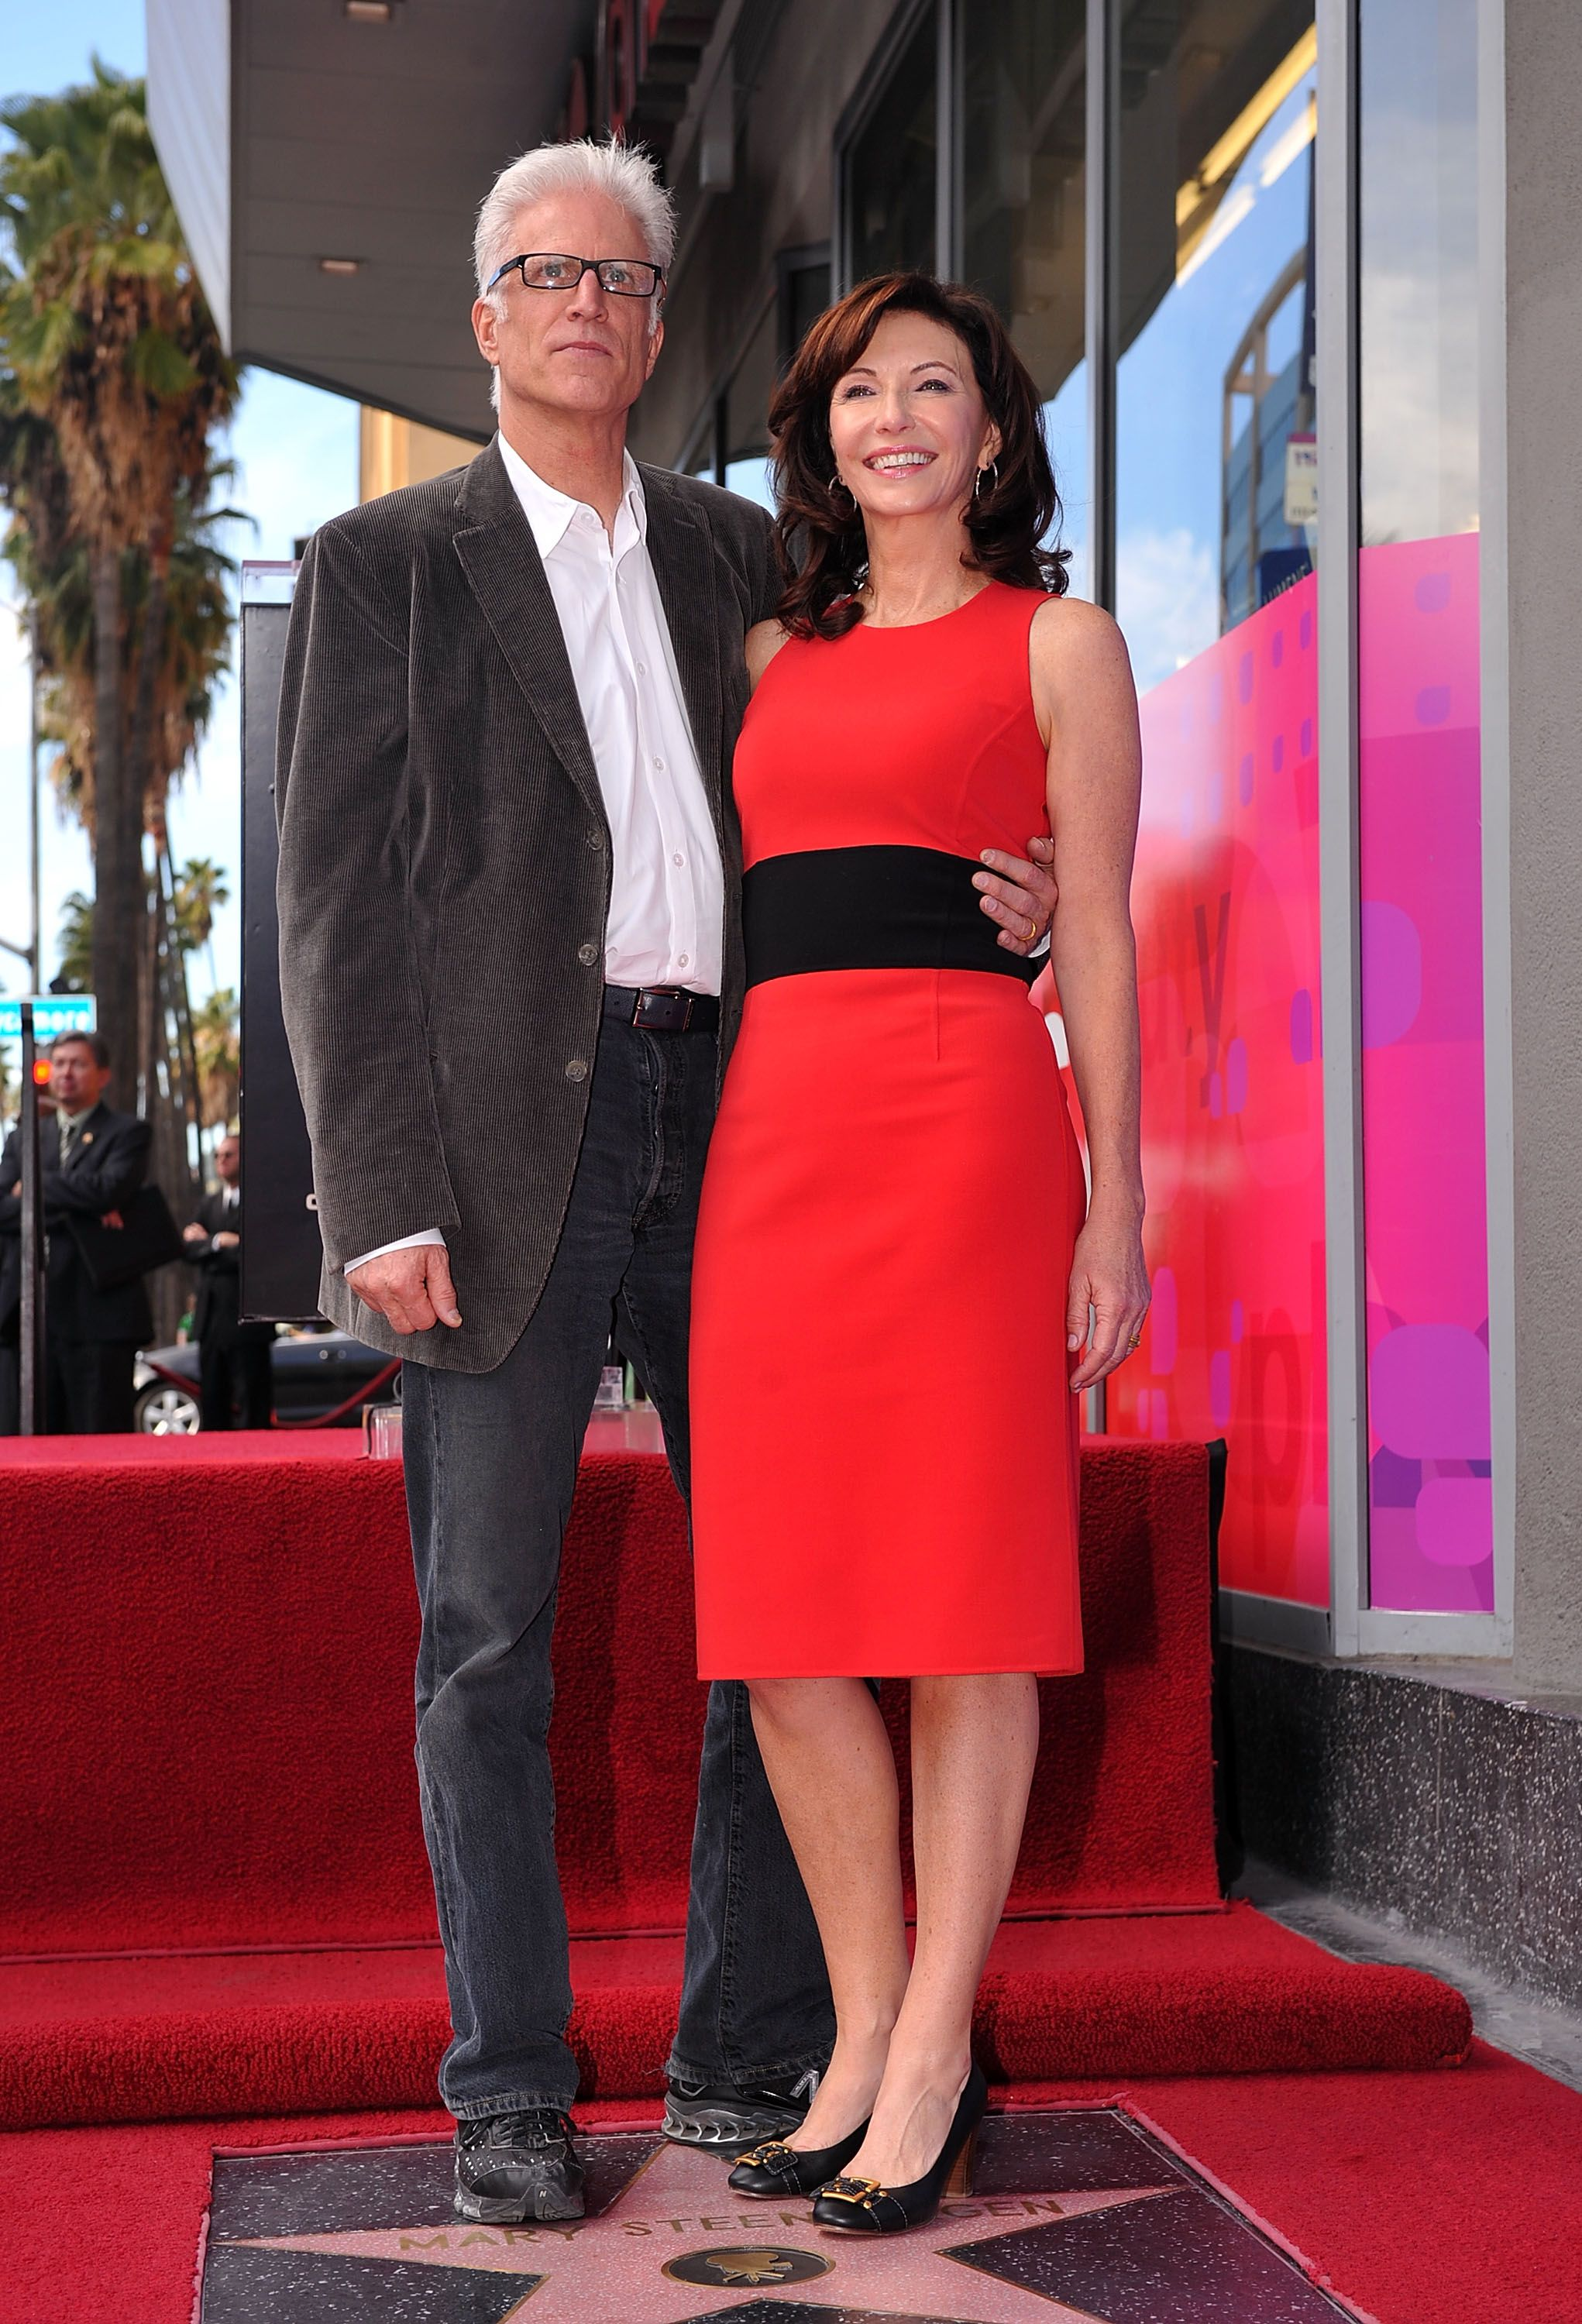 Ted Danson and Mary Steenburgen at The Hollywood Walk of Fame ceremony honoring Steenburgen in 2009 in Hollywood   Source: Getty Images